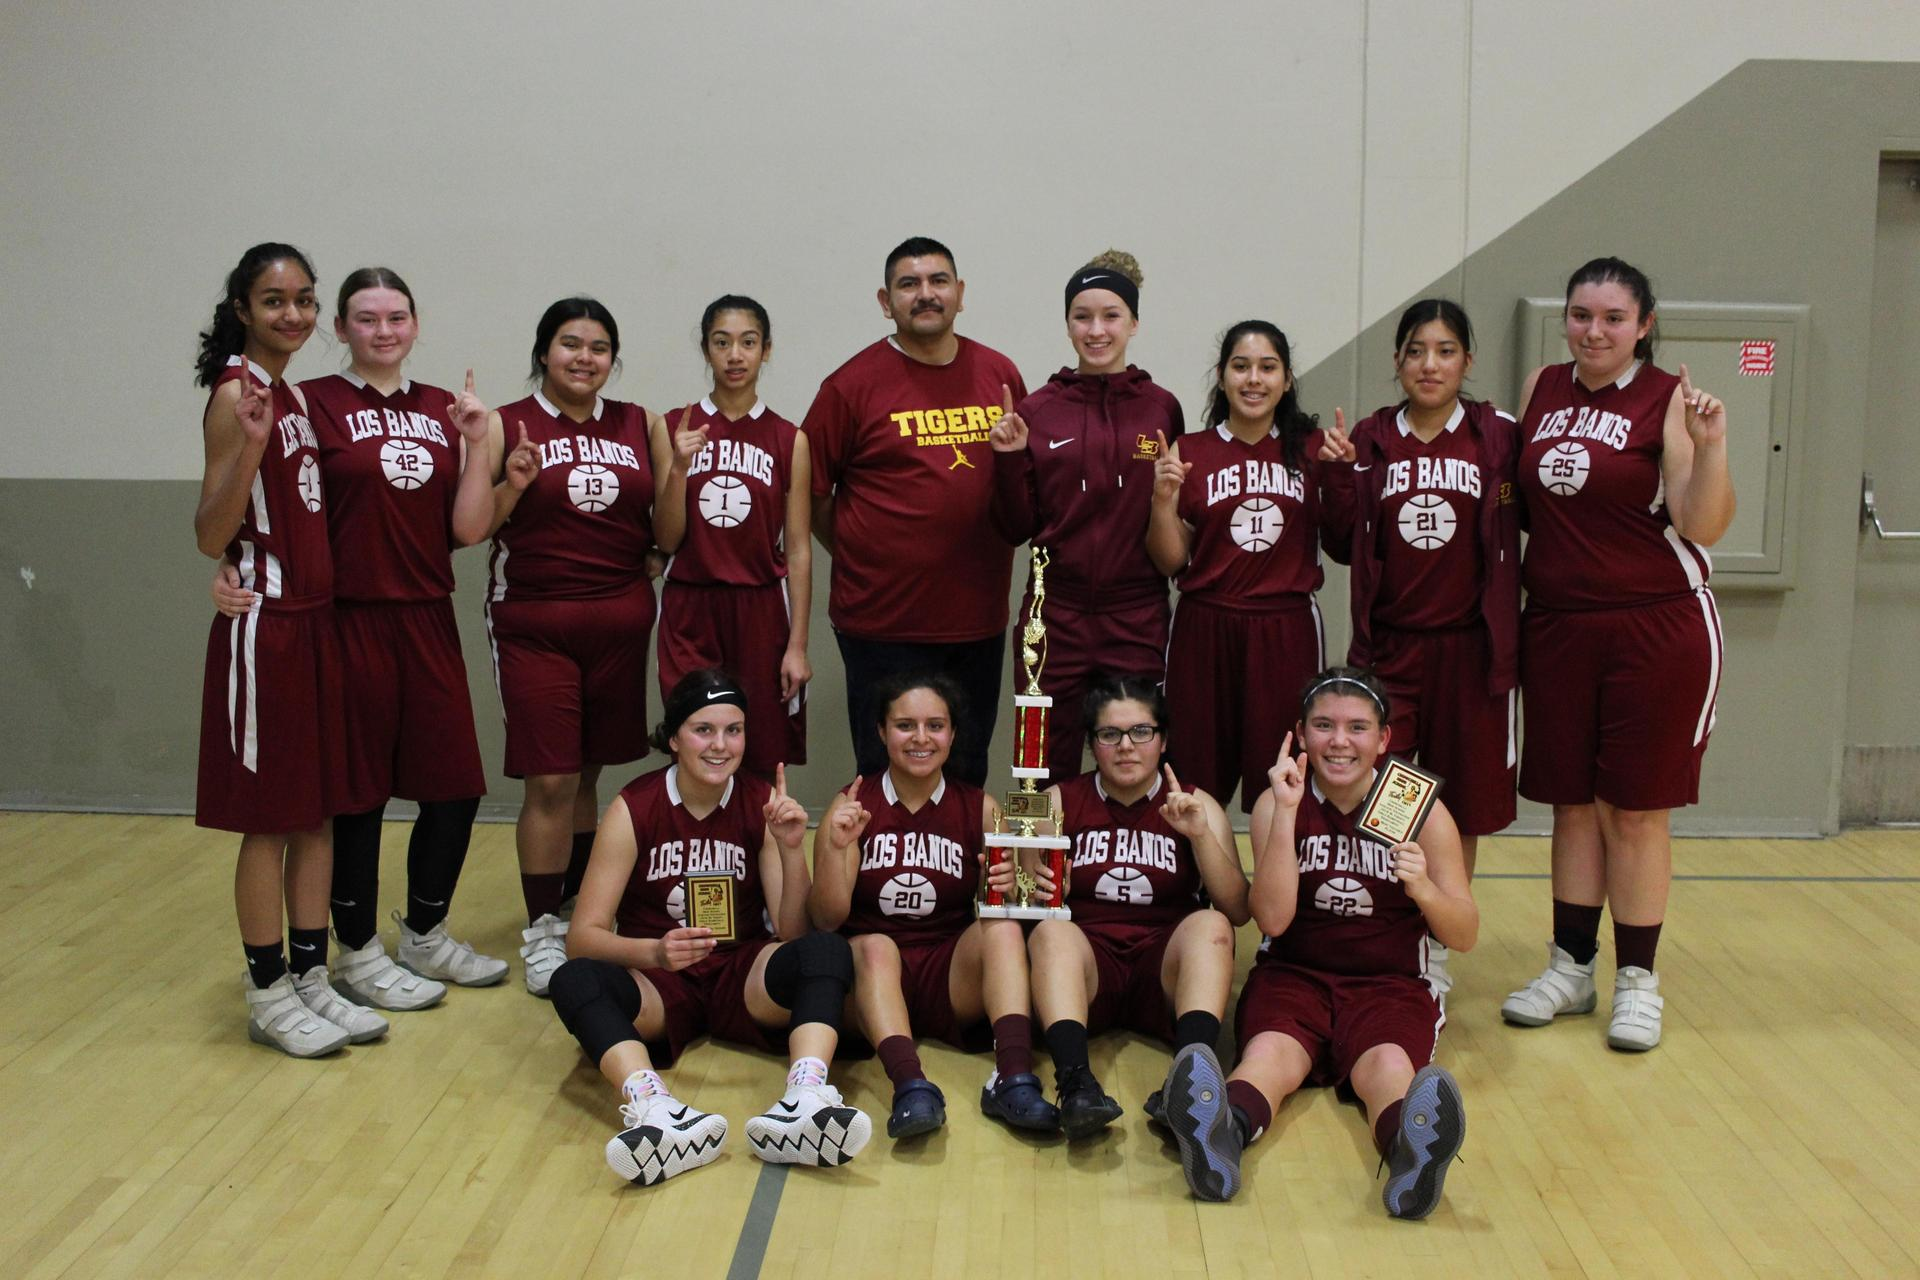 Los Banos Girl's Basketball -- Junior Varsity Champions